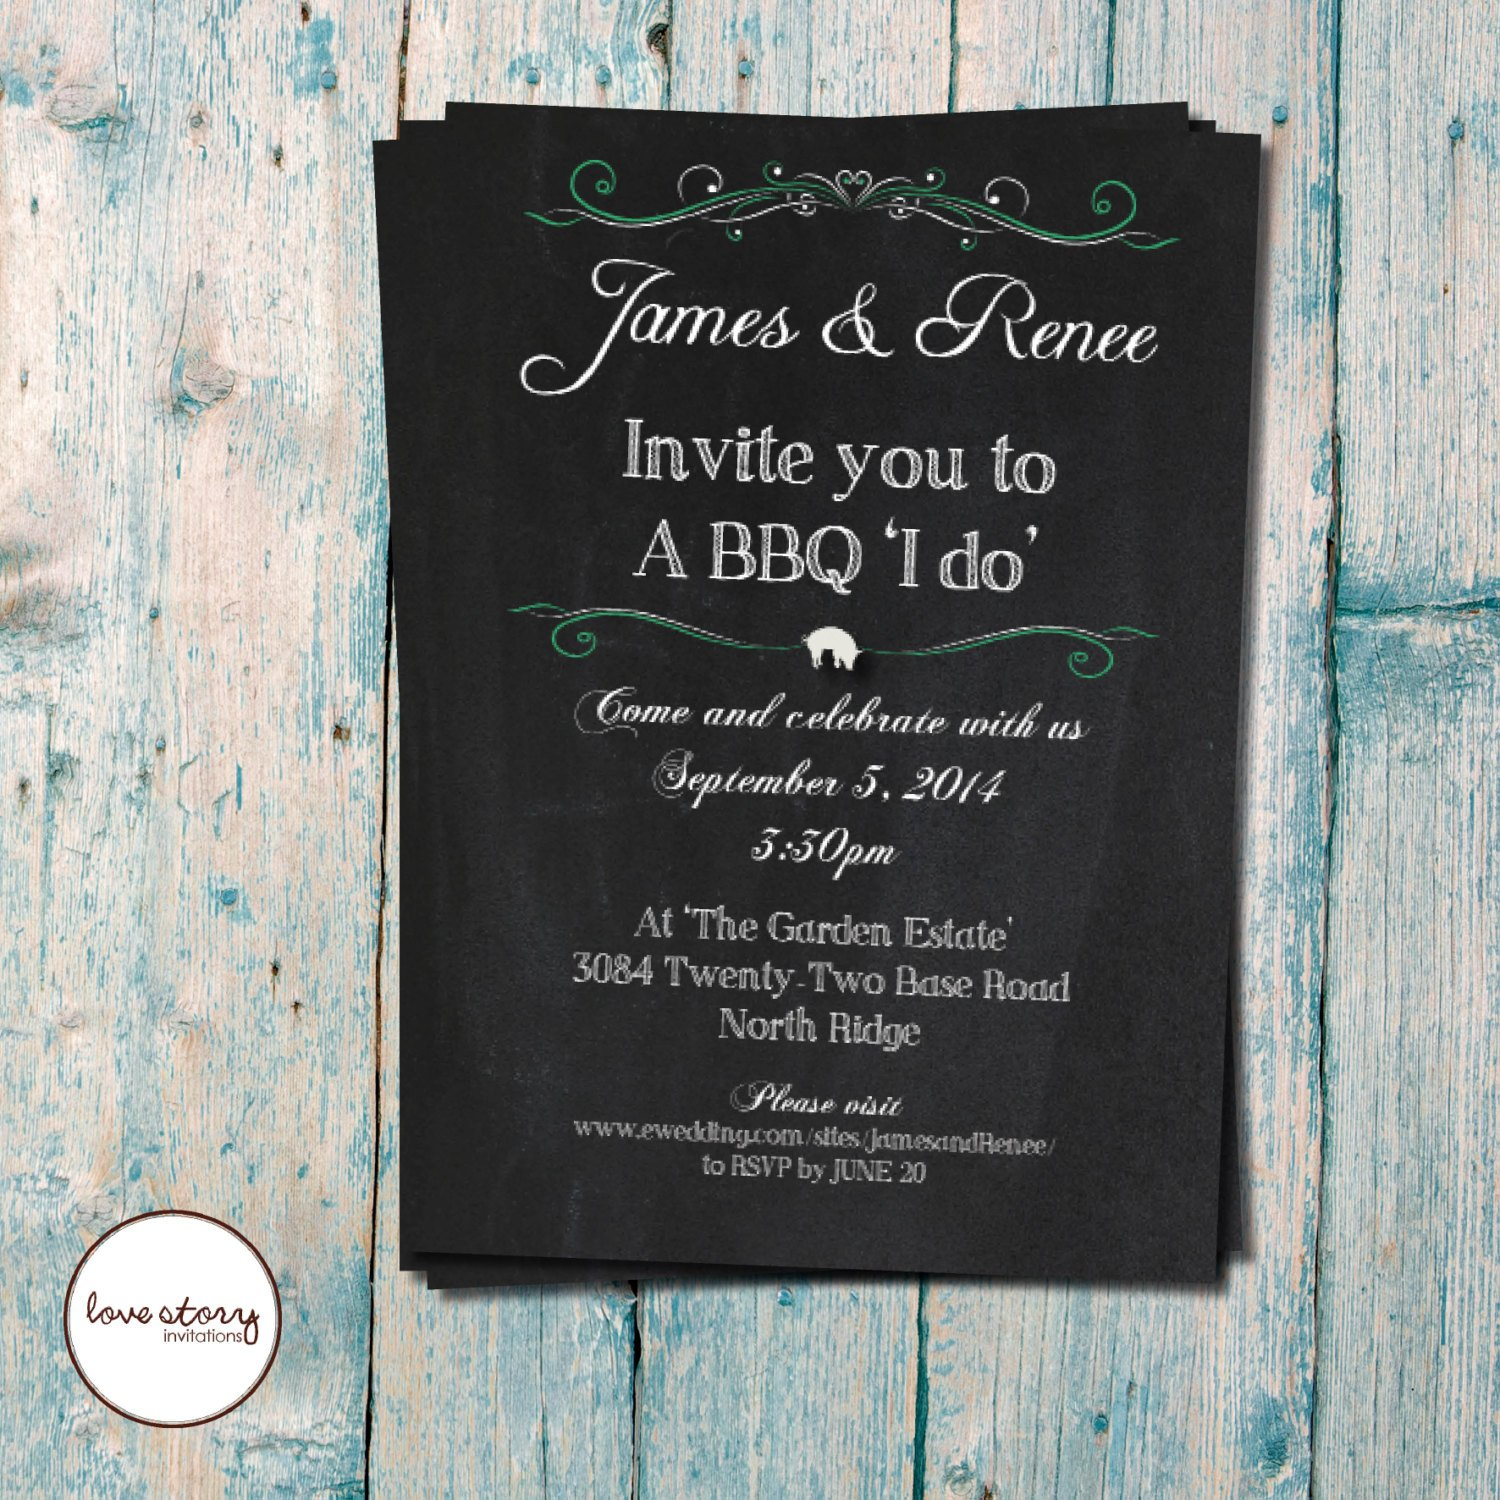 I Do Bbq Invitations Bbq I Do Wedding Invitation Casual by